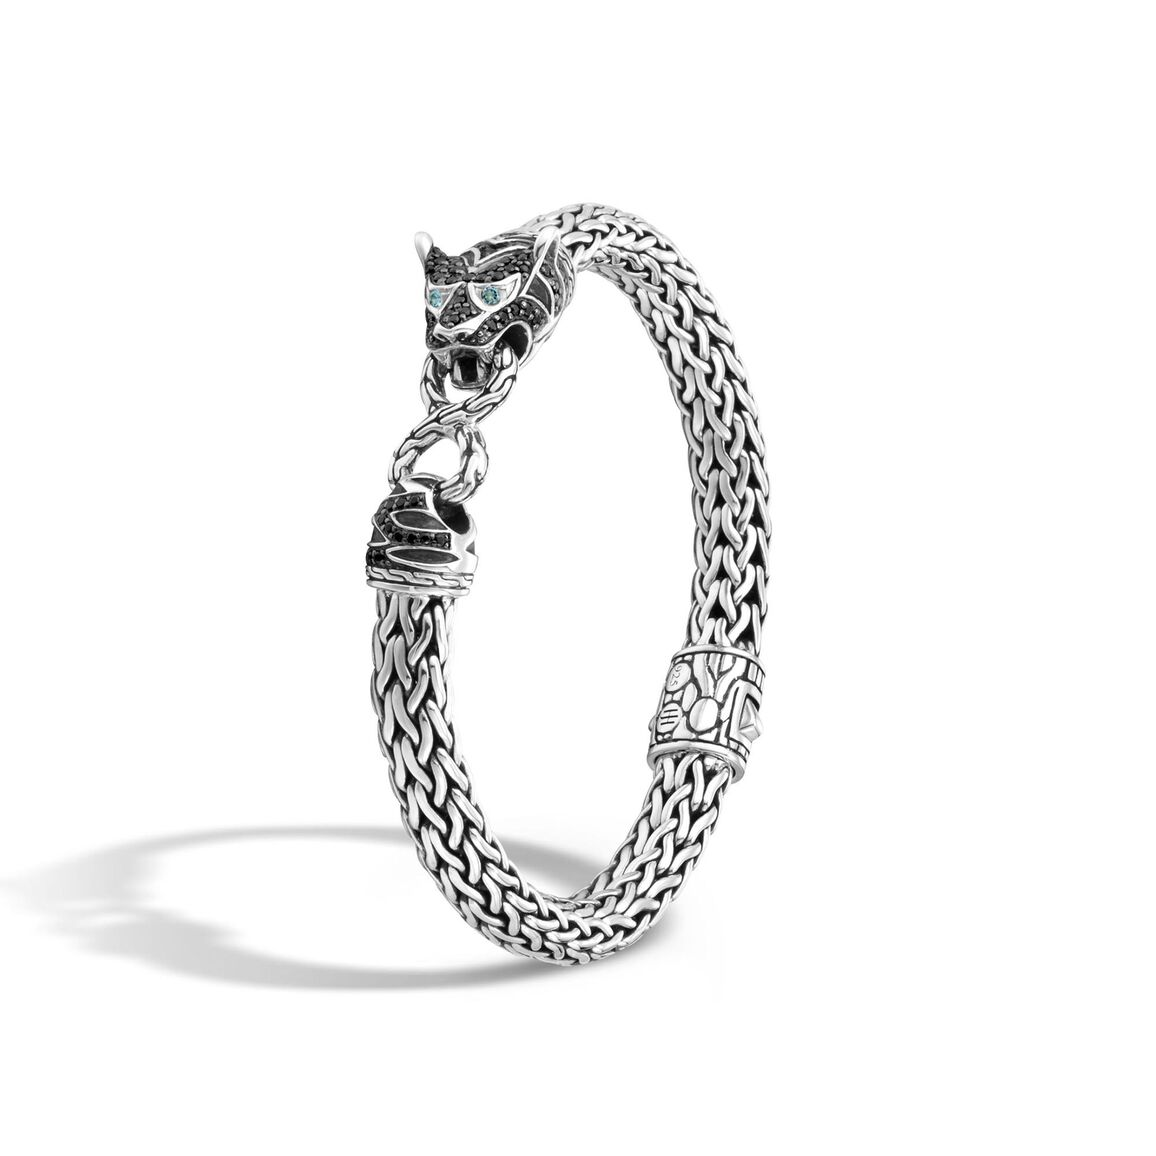 Legends Macan 7.5MM Station Bracelet in Silver with Gemstone